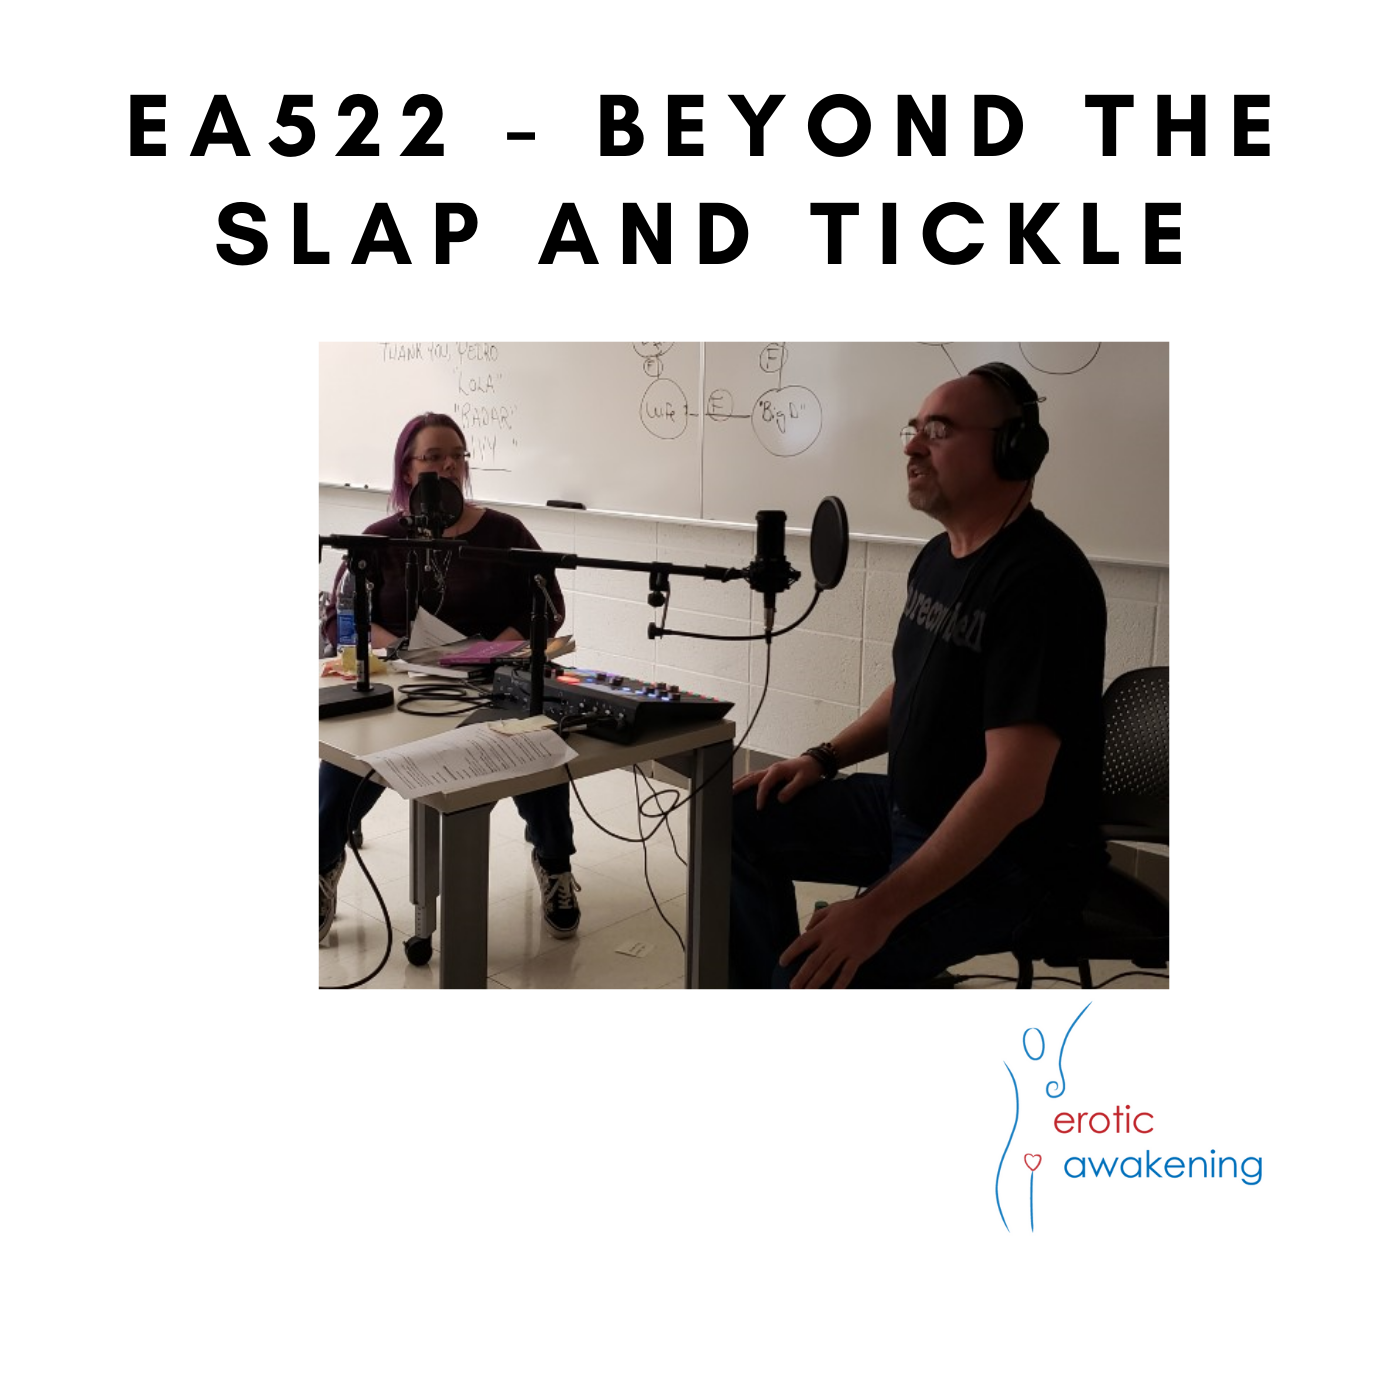 Erotic Awakening Podcast - EA522 - Beyond the slap and tickle